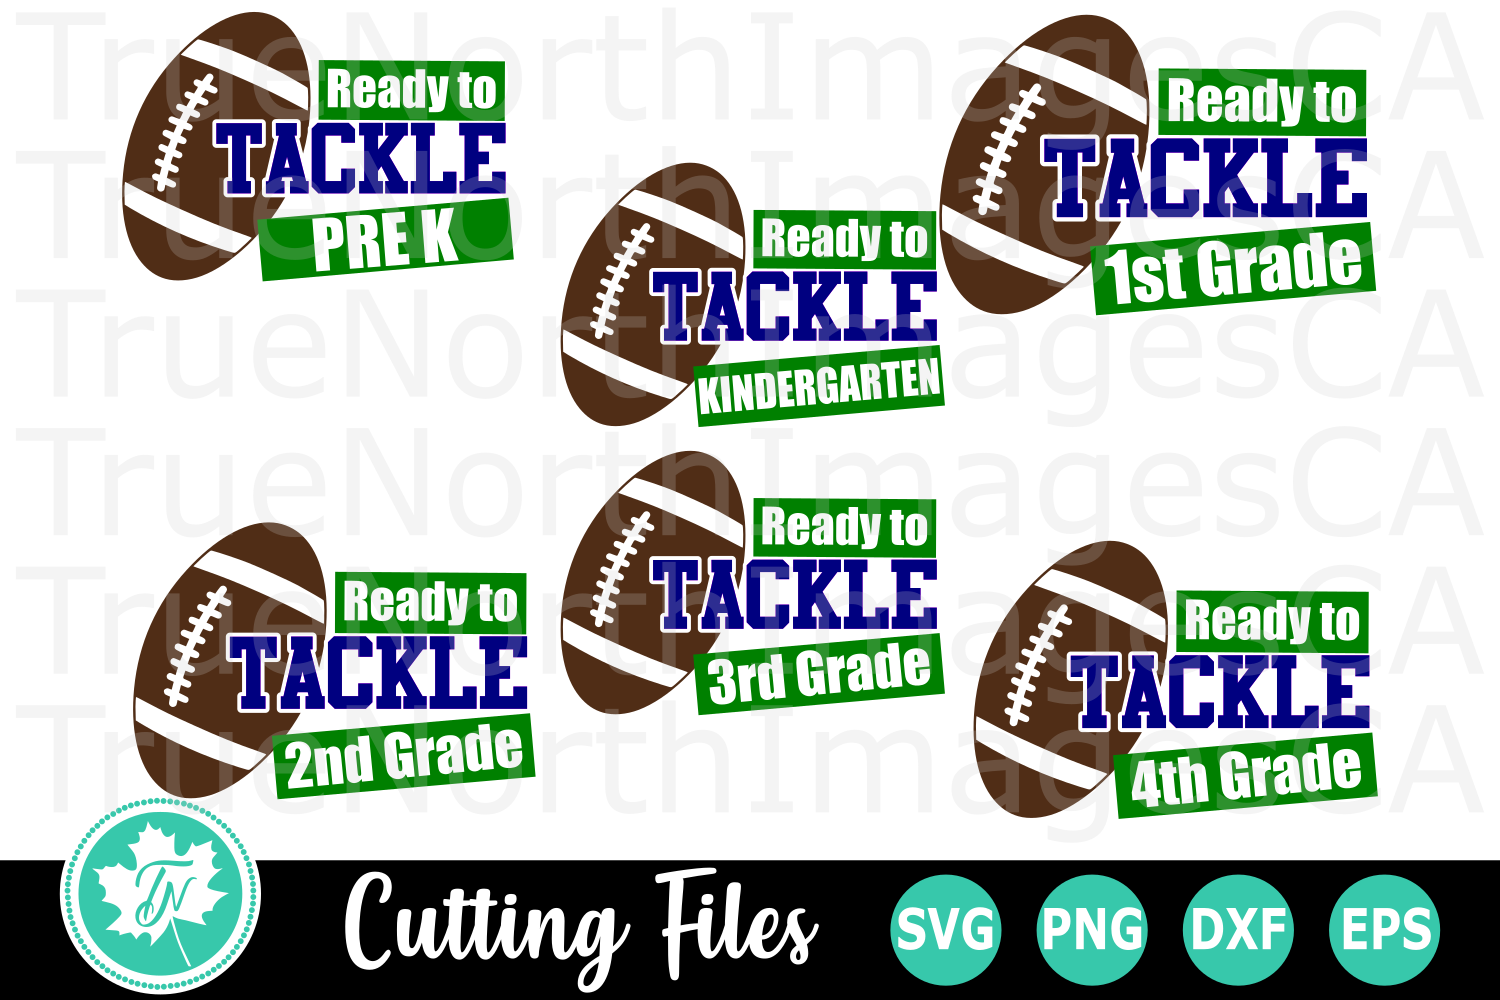 Ready to Tackle School - A School SVG Cut File Bundle example image 1